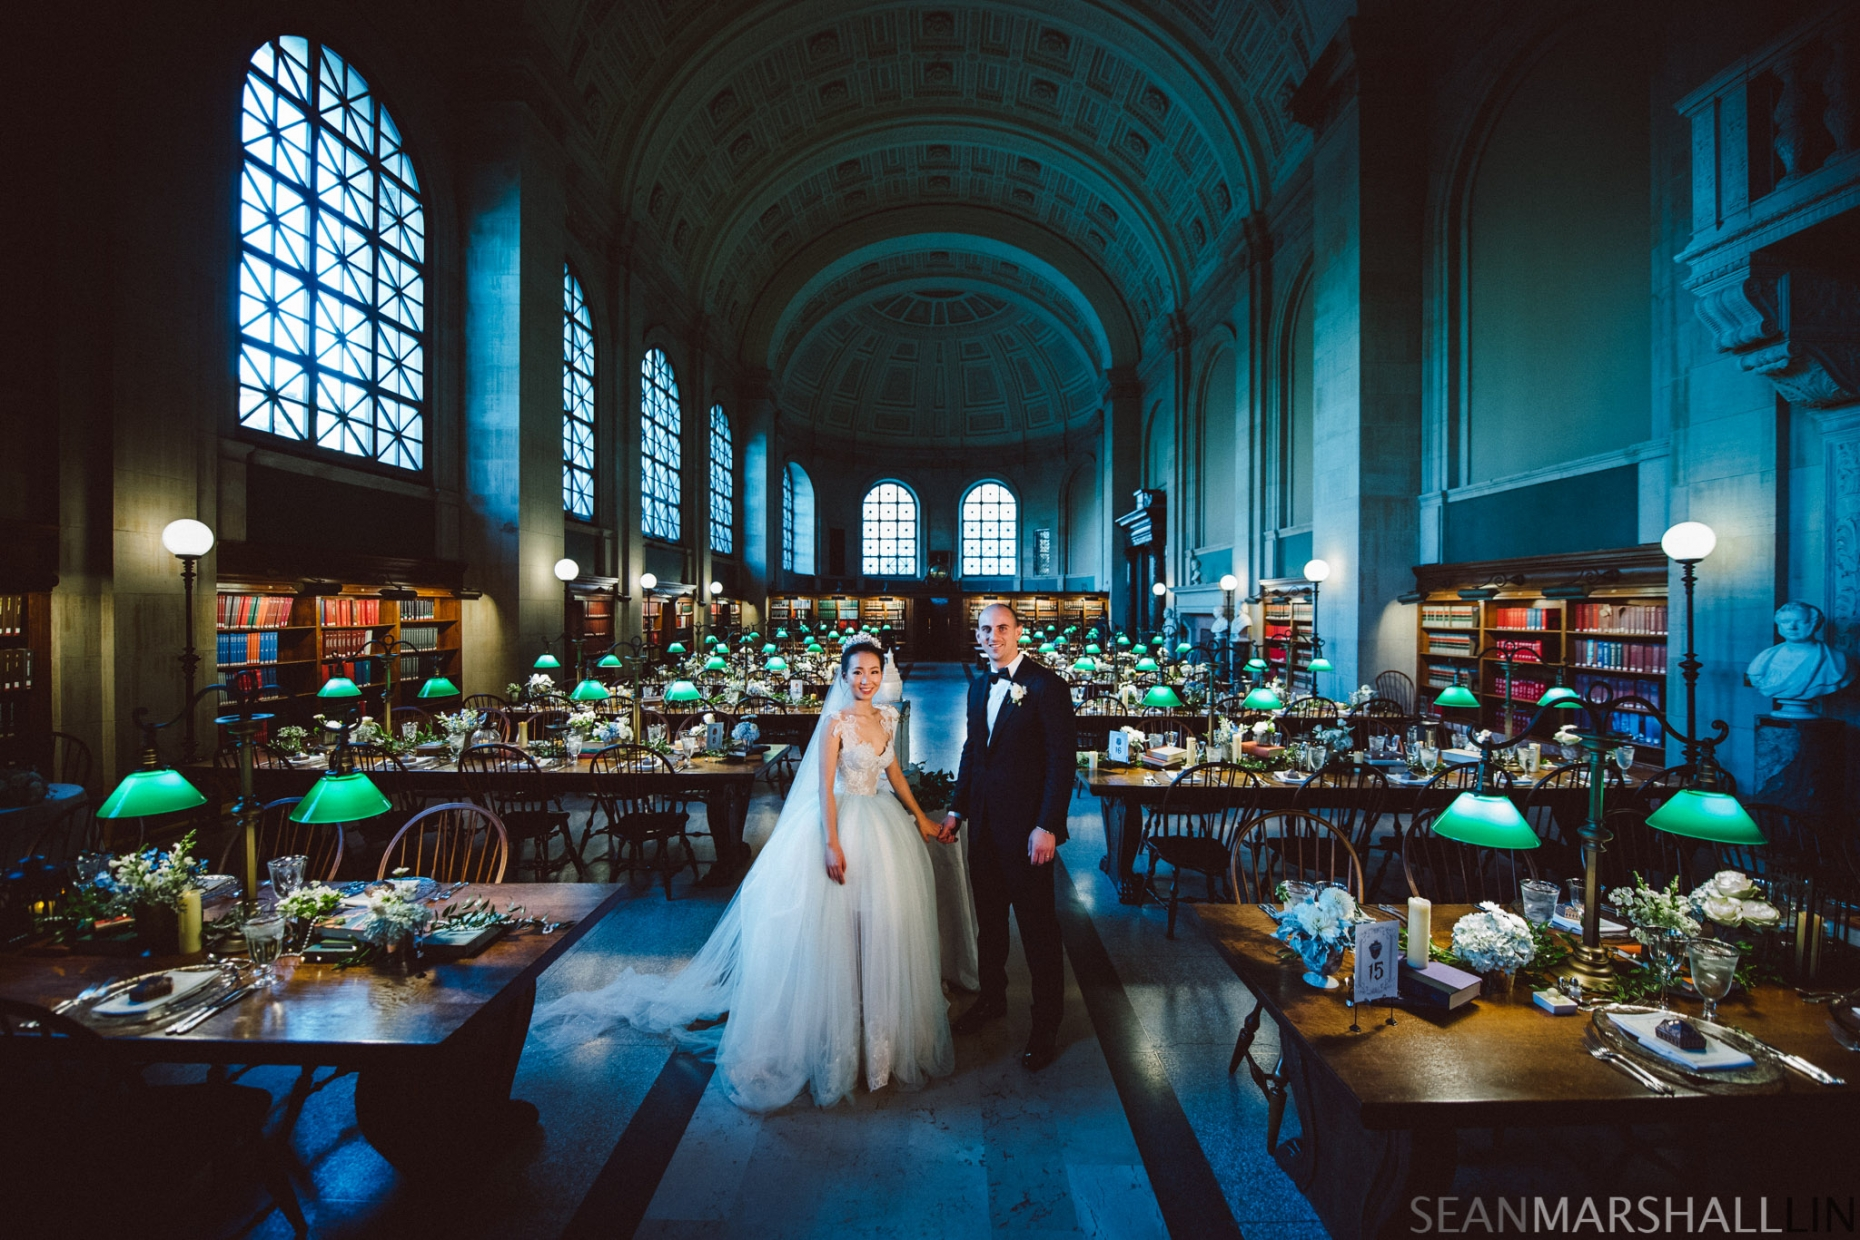 Boston Public Library Wedding.Mio Matthew The Boston Public Library Wedding Sean